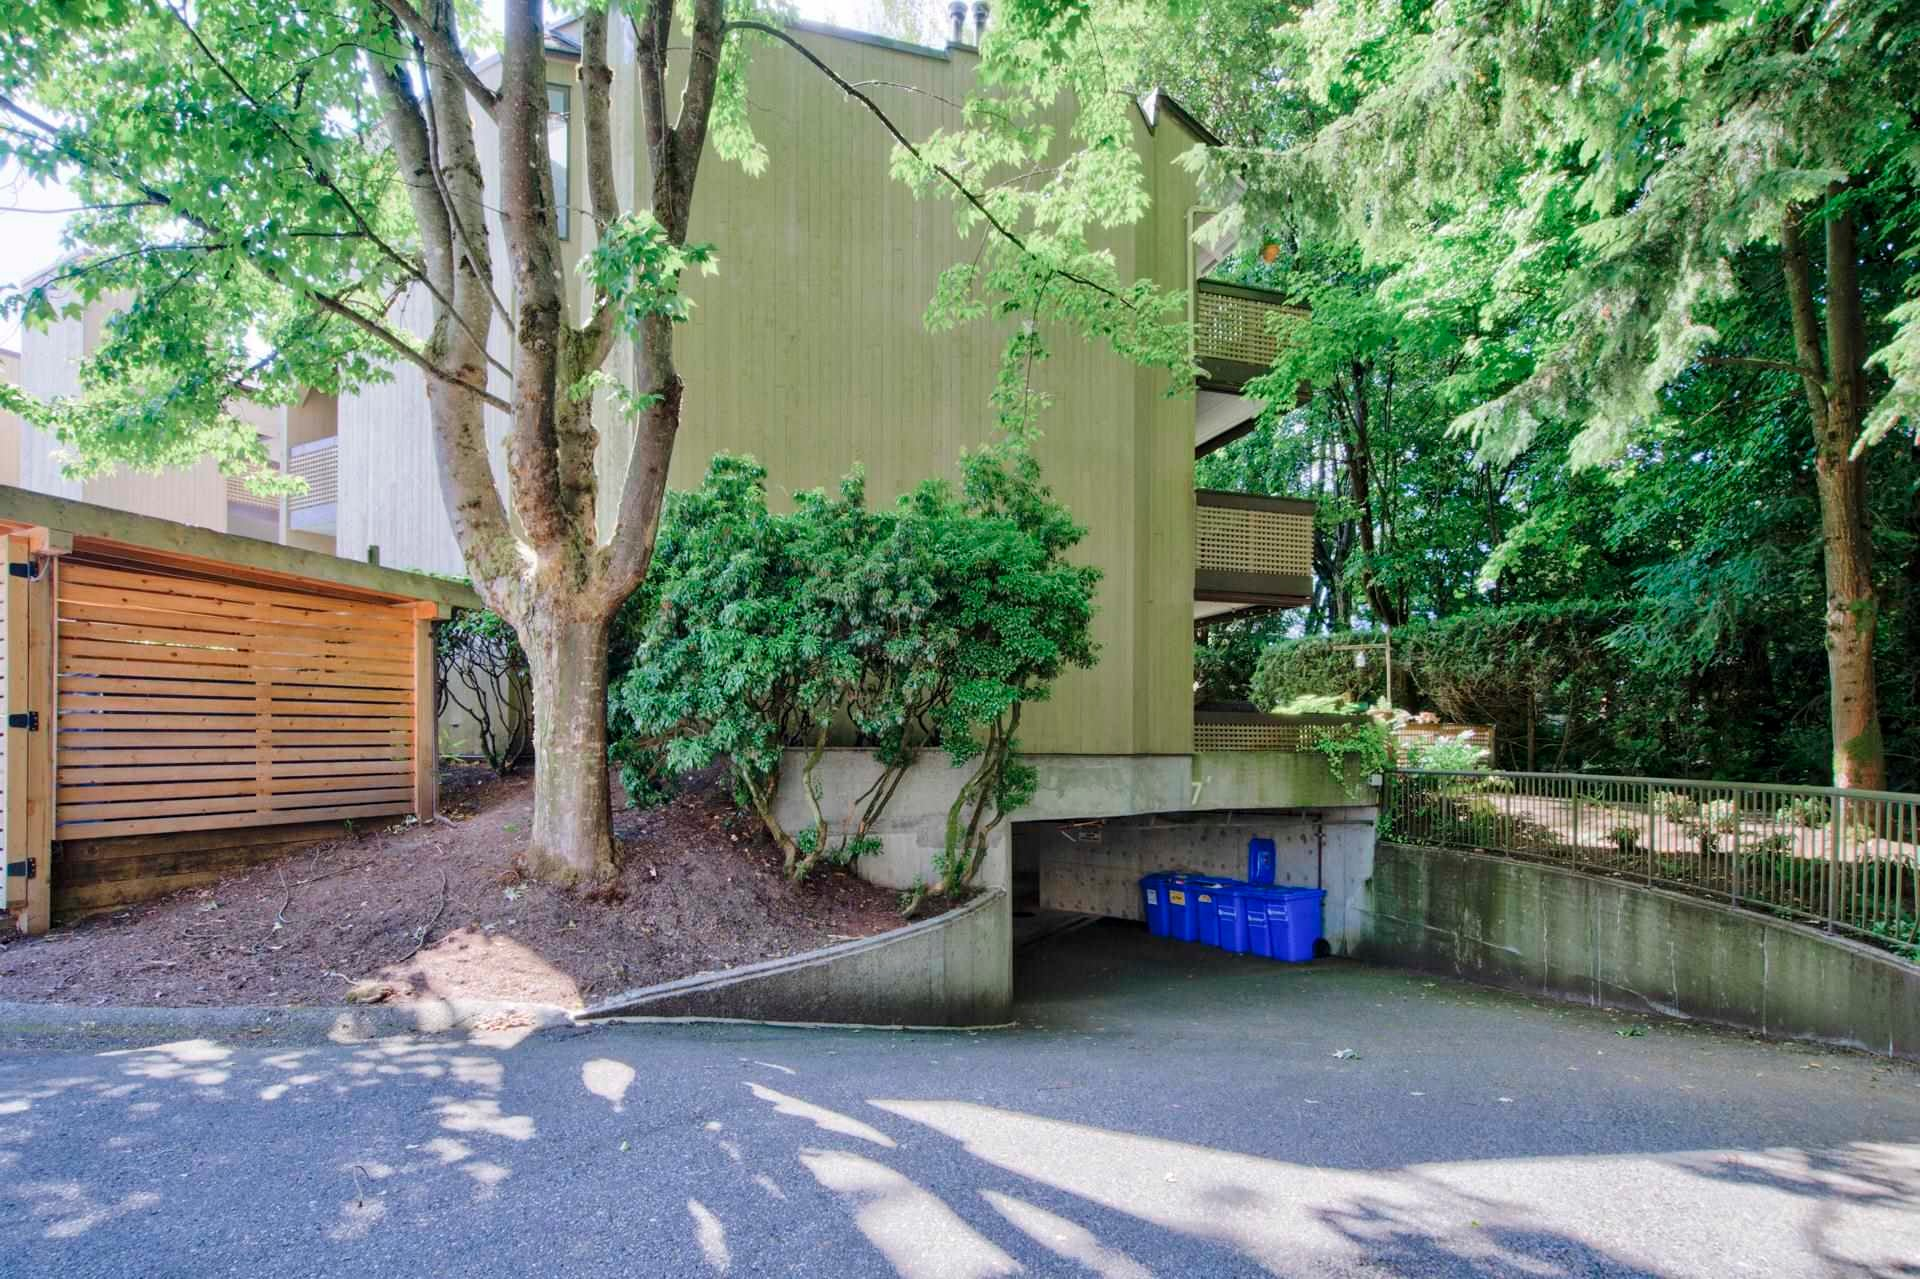 301 3187 MOUNTAIN HIGHWAY - Lynn Valley Apartment/Condo for sale, 2 Bedrooms (R2603681) - #22